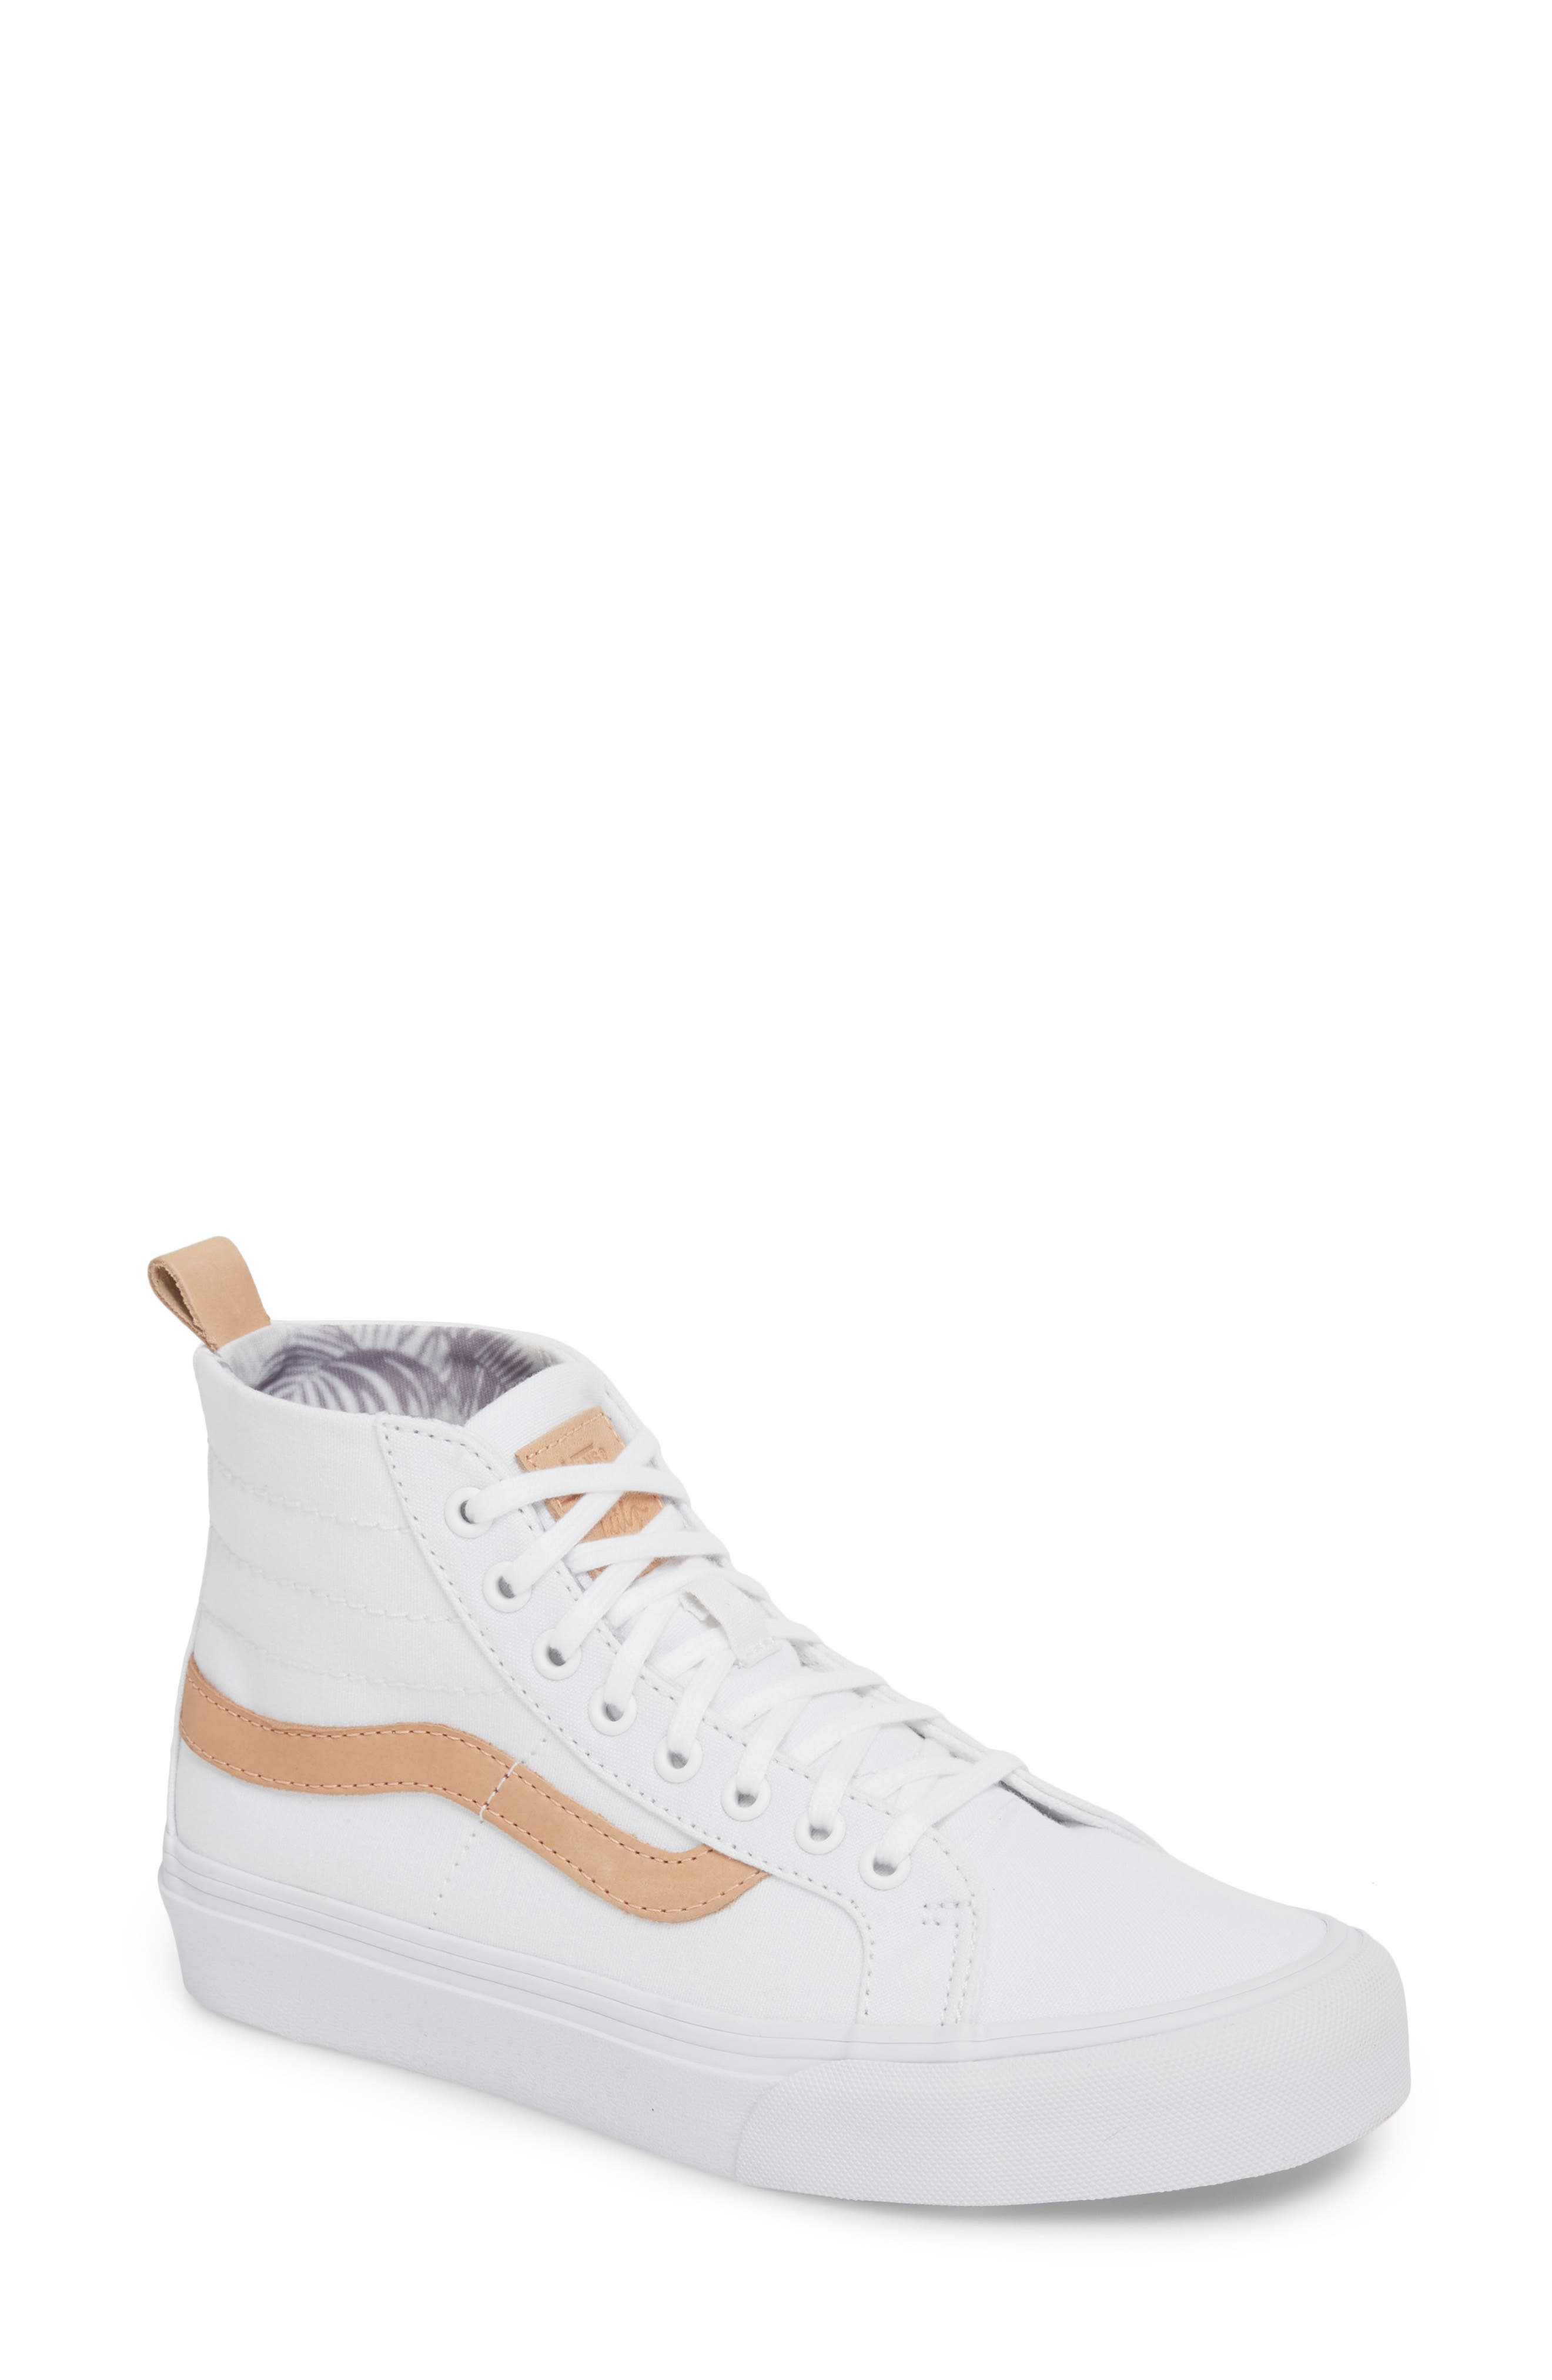 x Leila Hurst Sk8-Hi Decon SF Sneaker,                         Main,                         color, 100